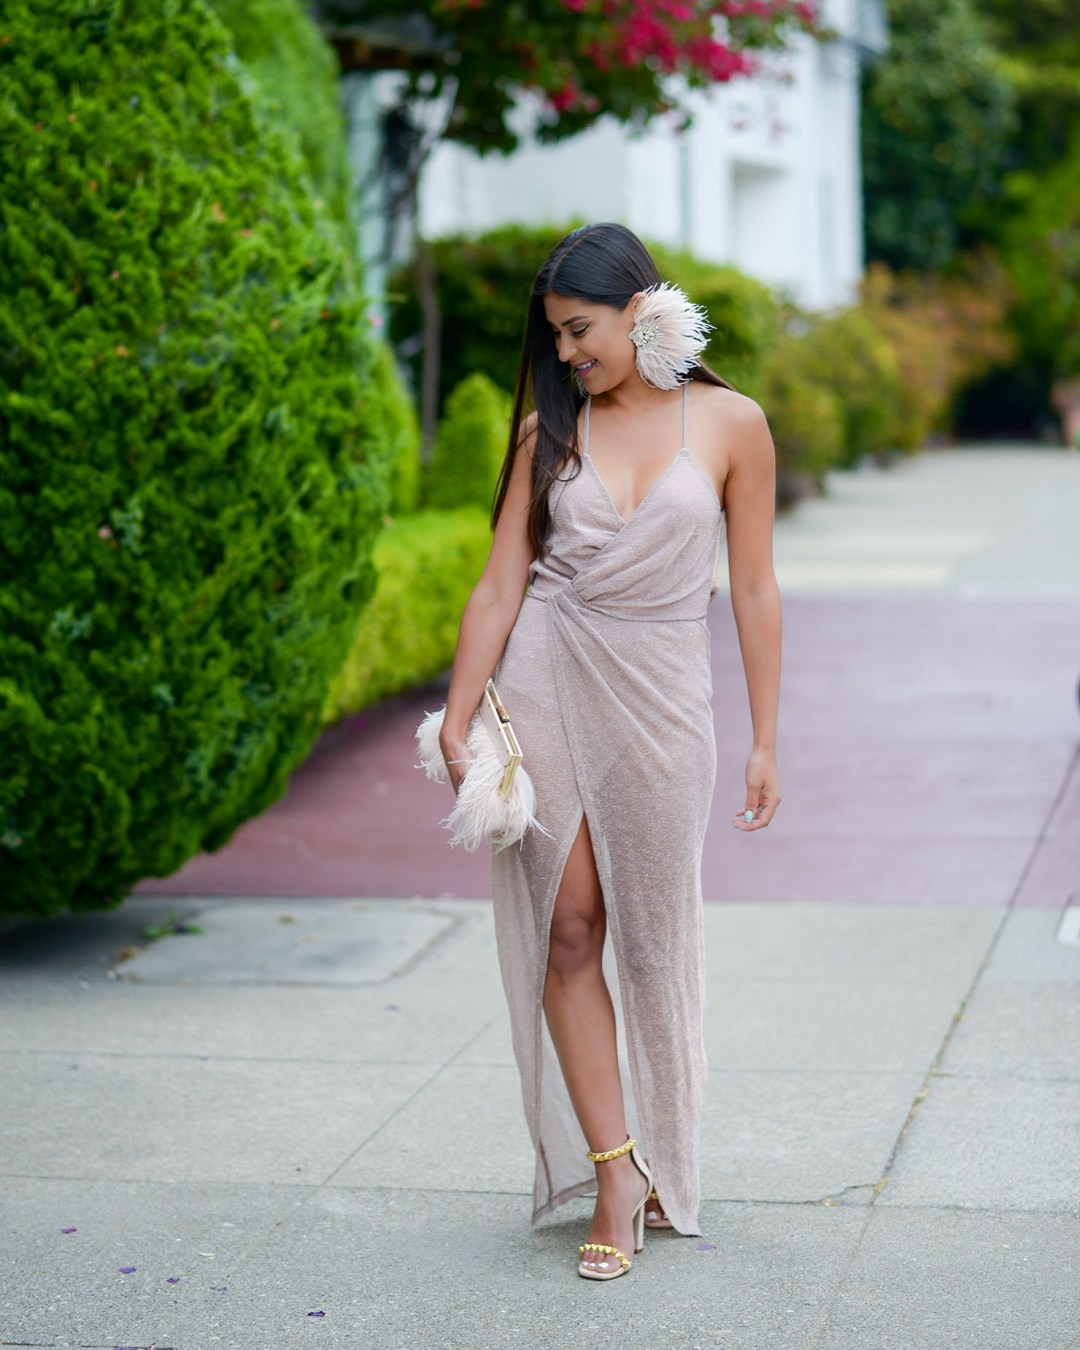 Lifestyle Blogger Kelsey Kaplan of Kelsey Kaplan Fashion wearing rose gold wrap dress and Stuart Weitzman sandals